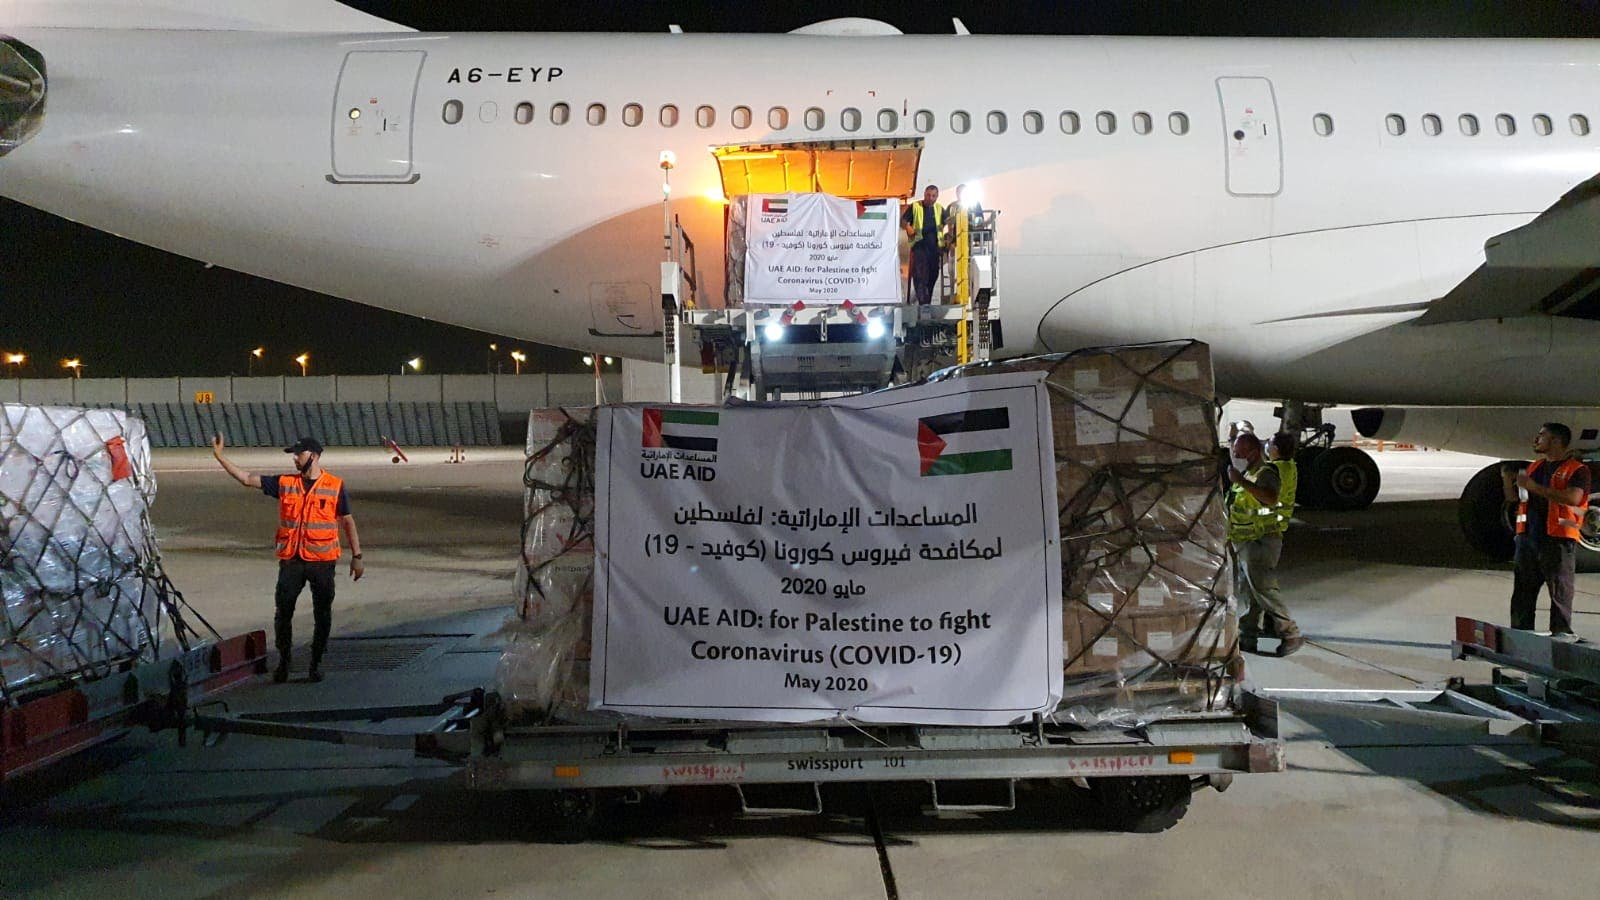 A cargo plane operated by Abu Dhabi's Etihad Airways offloads aid related to the coronavirus disease (COVID-19) for Palestinians at Ben Gurion airport on May 19, 2020. (Reuters)